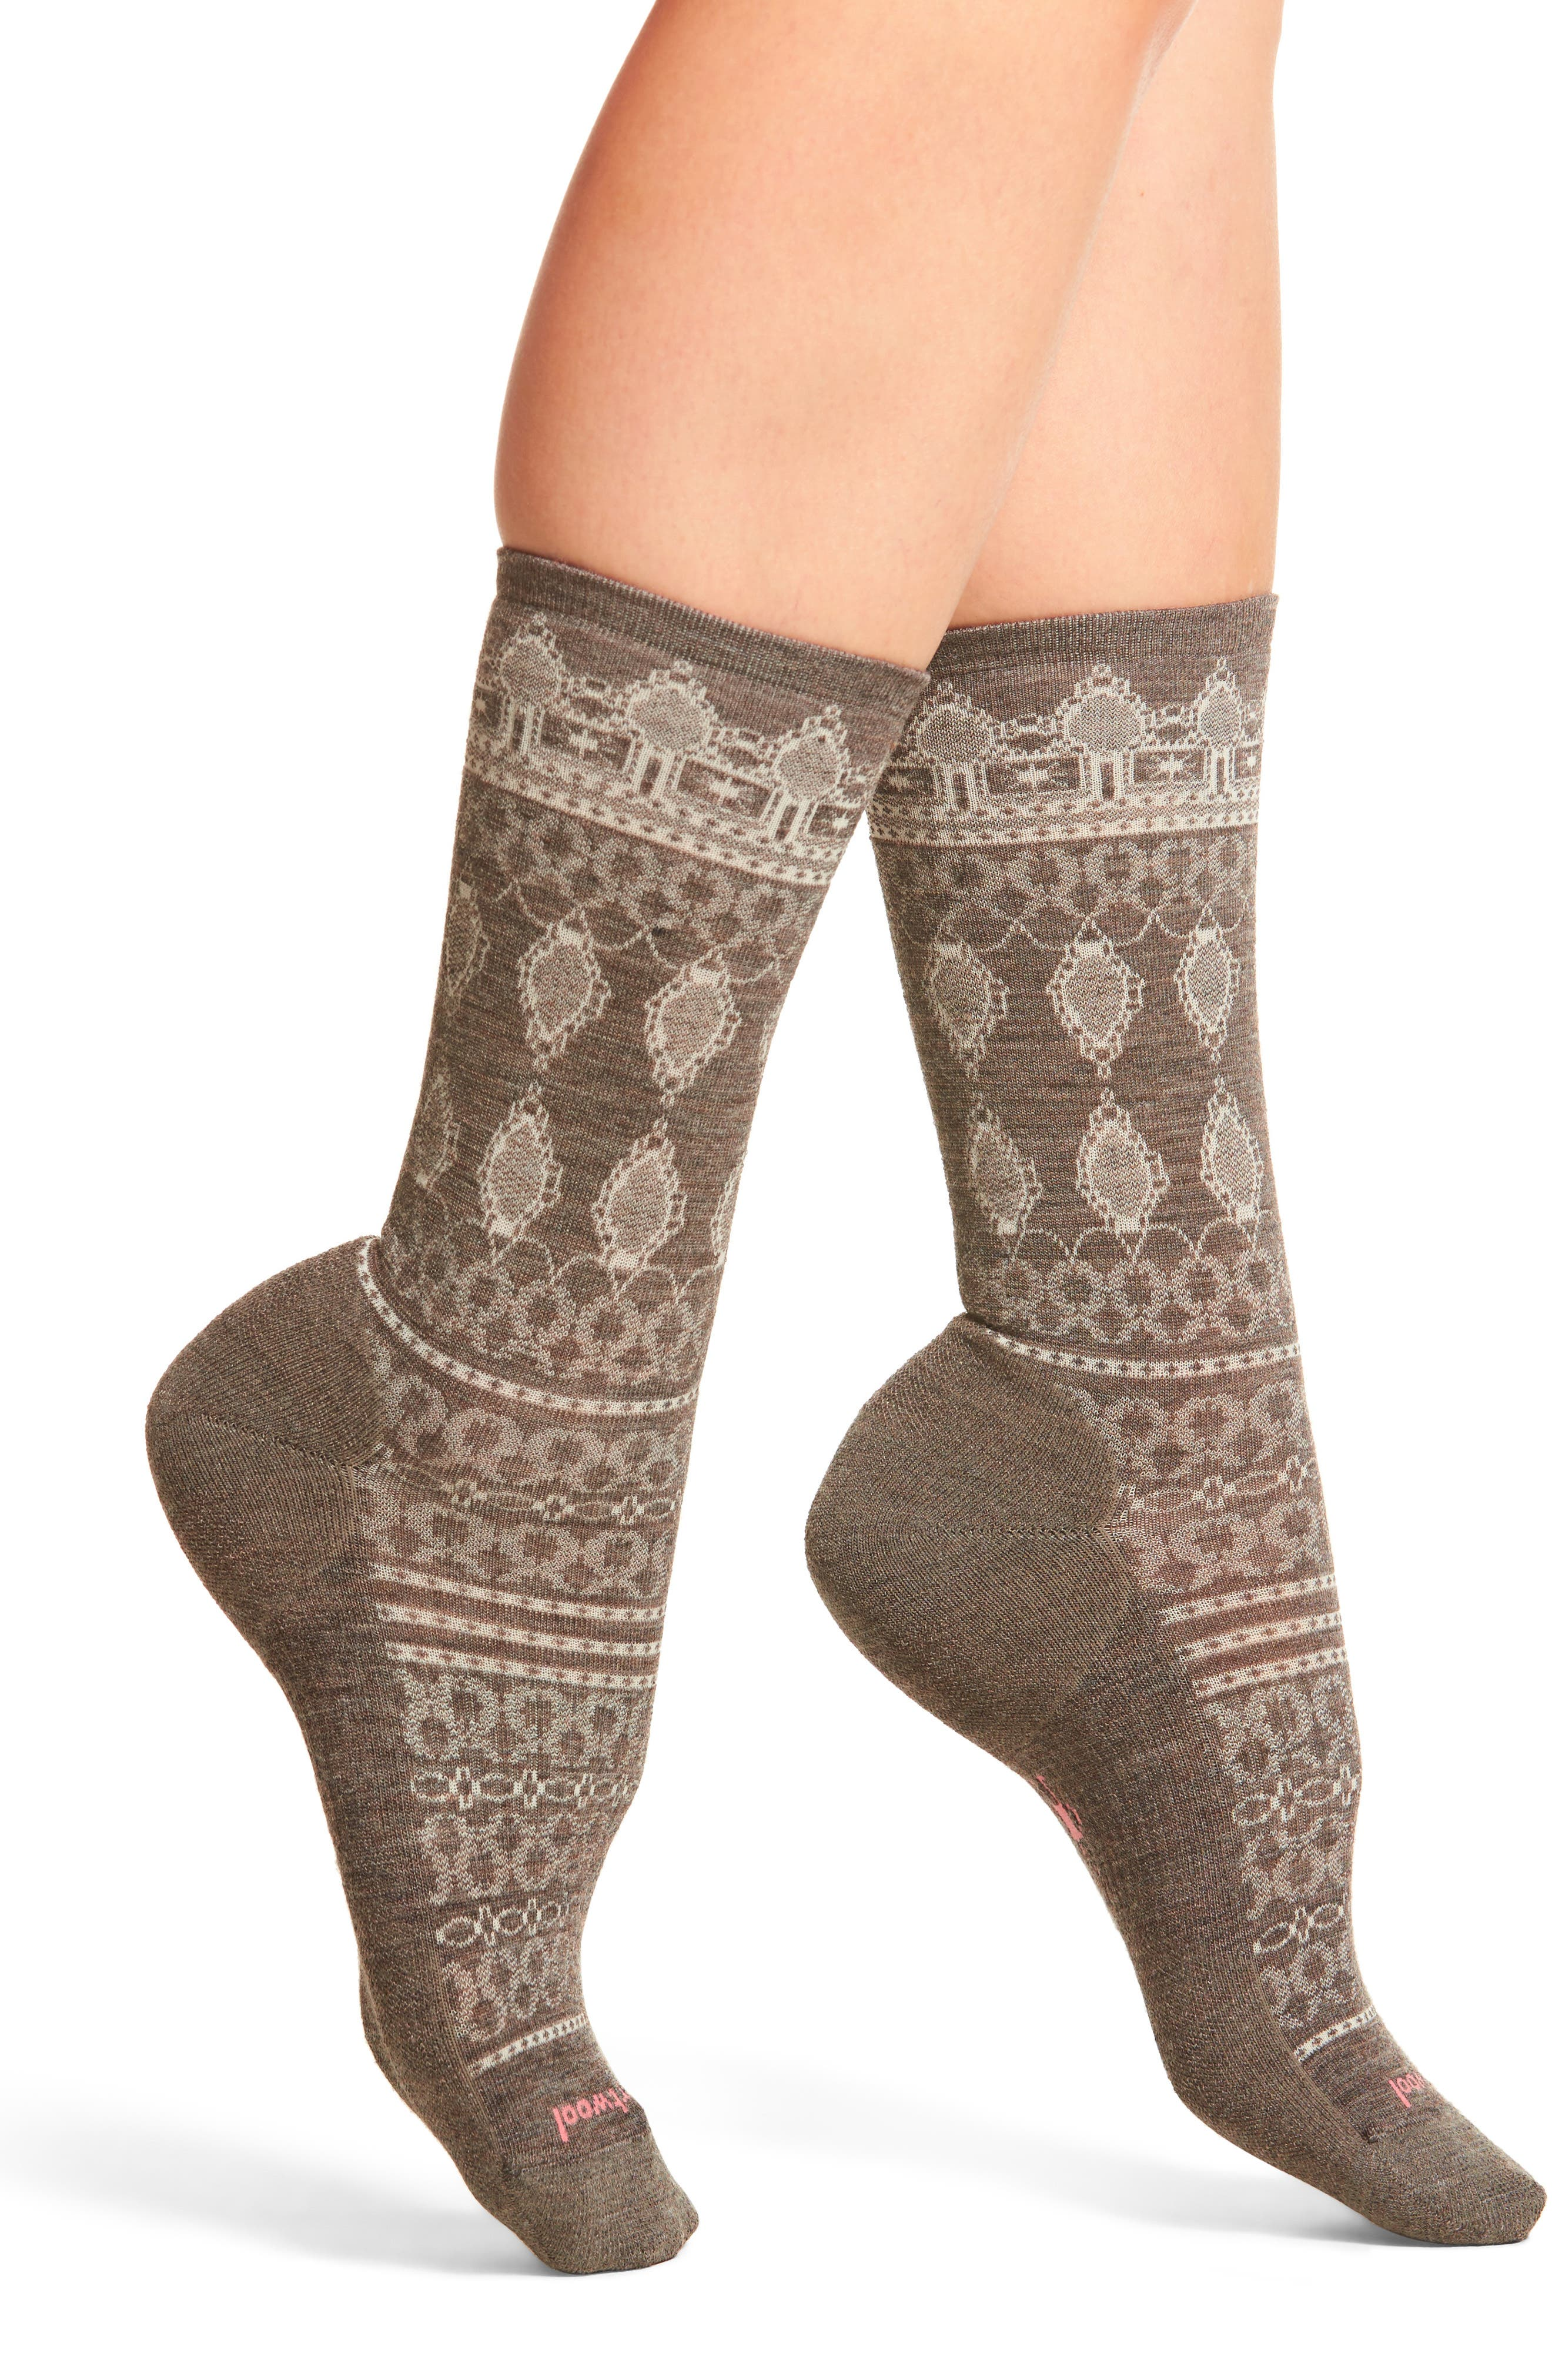 Alternate Image 1 Selected - Smartwool Lacet Crew Socks